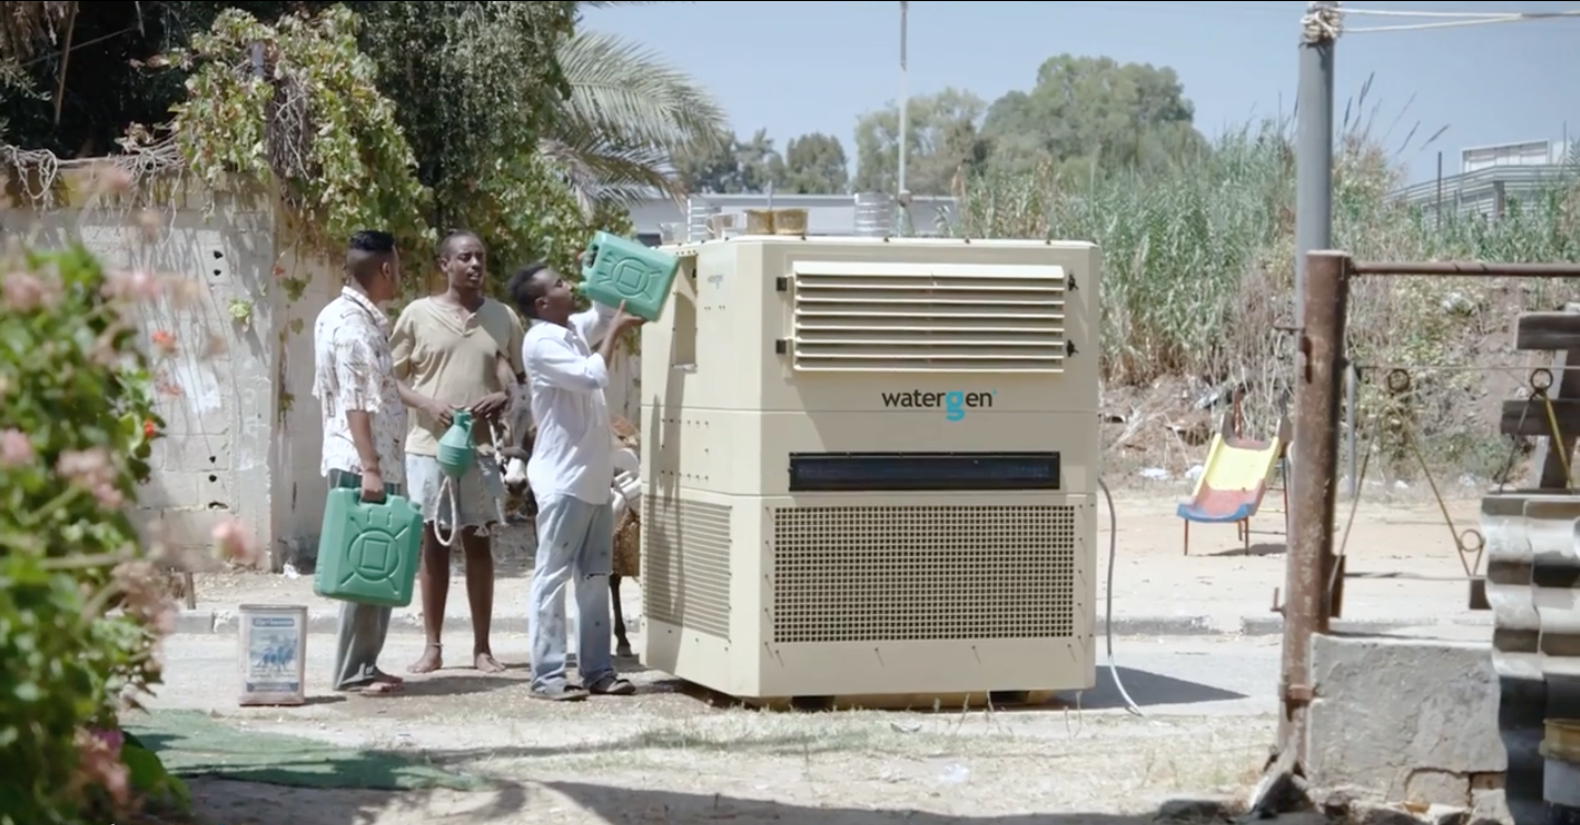 Innovative Water-Gen machine harvests up to 825 gallons of clean water from thin air in a day